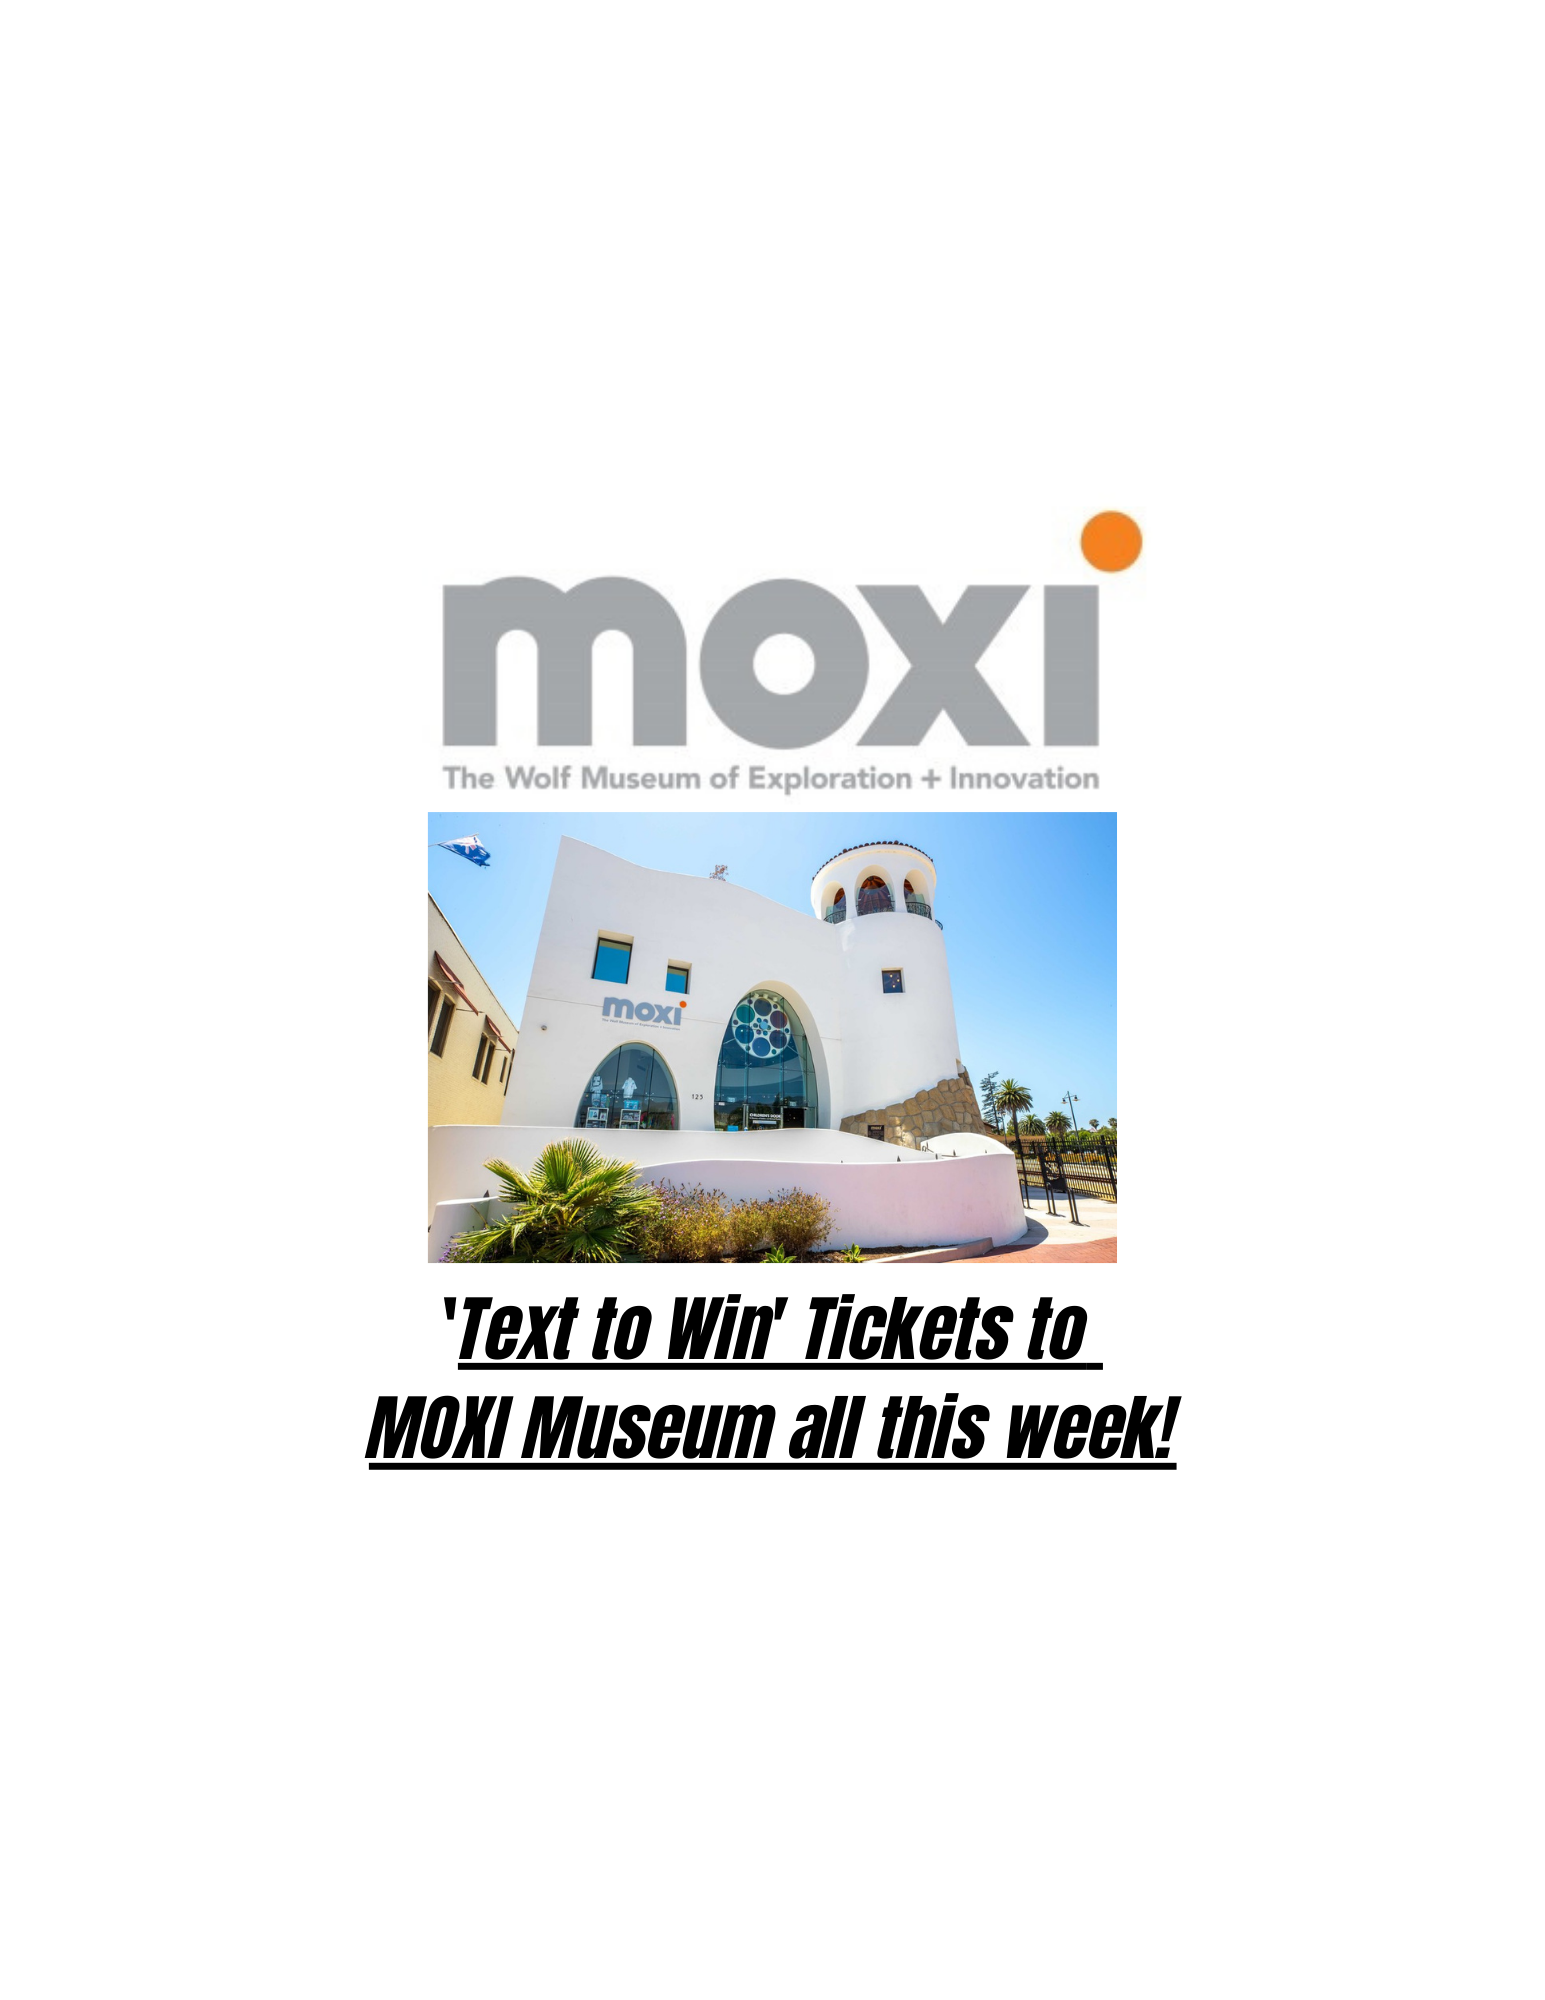 'Text to Win' MOXI Museum tickets all week on KBBY!